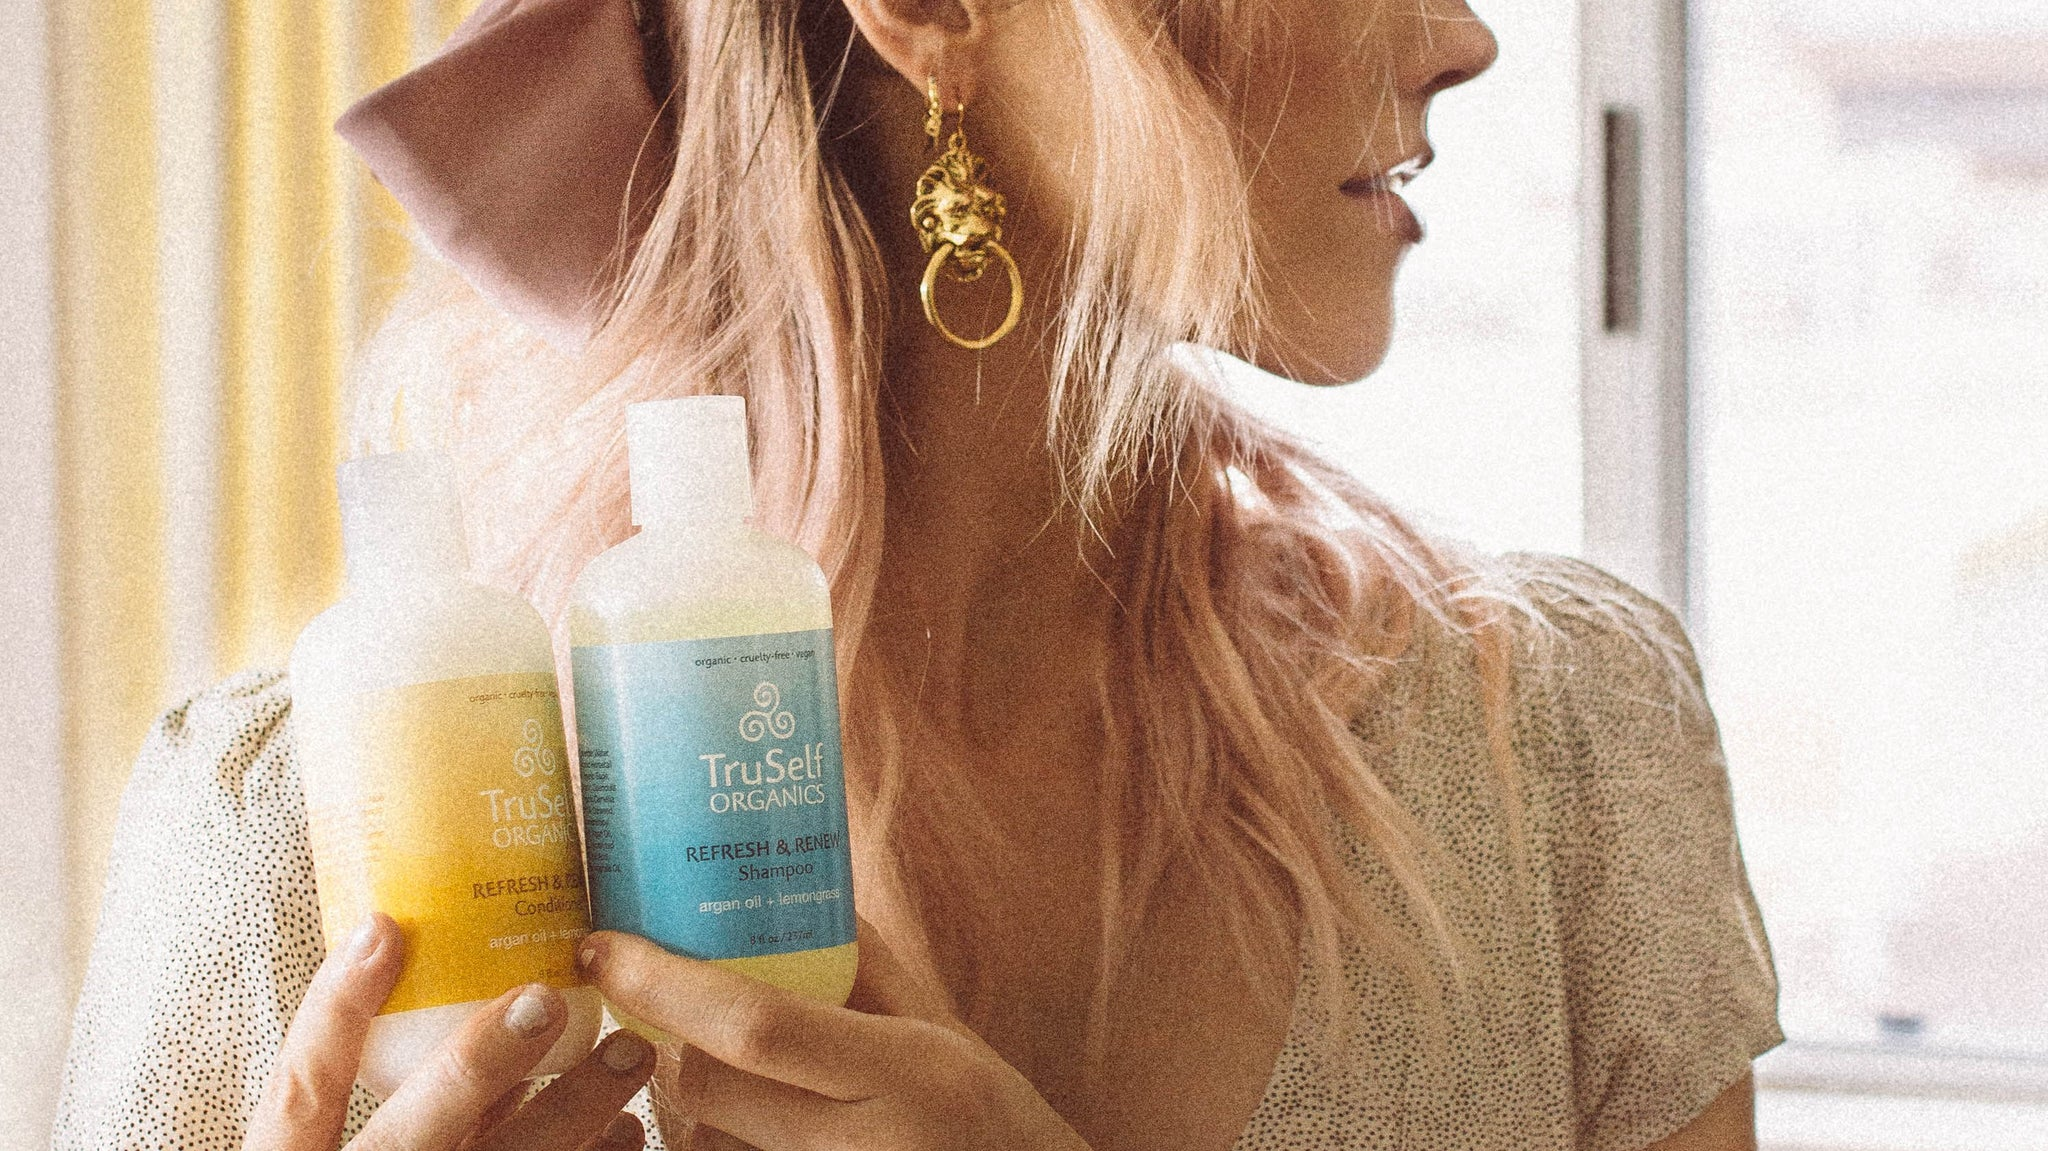 shampoo and conditioner for colored hair